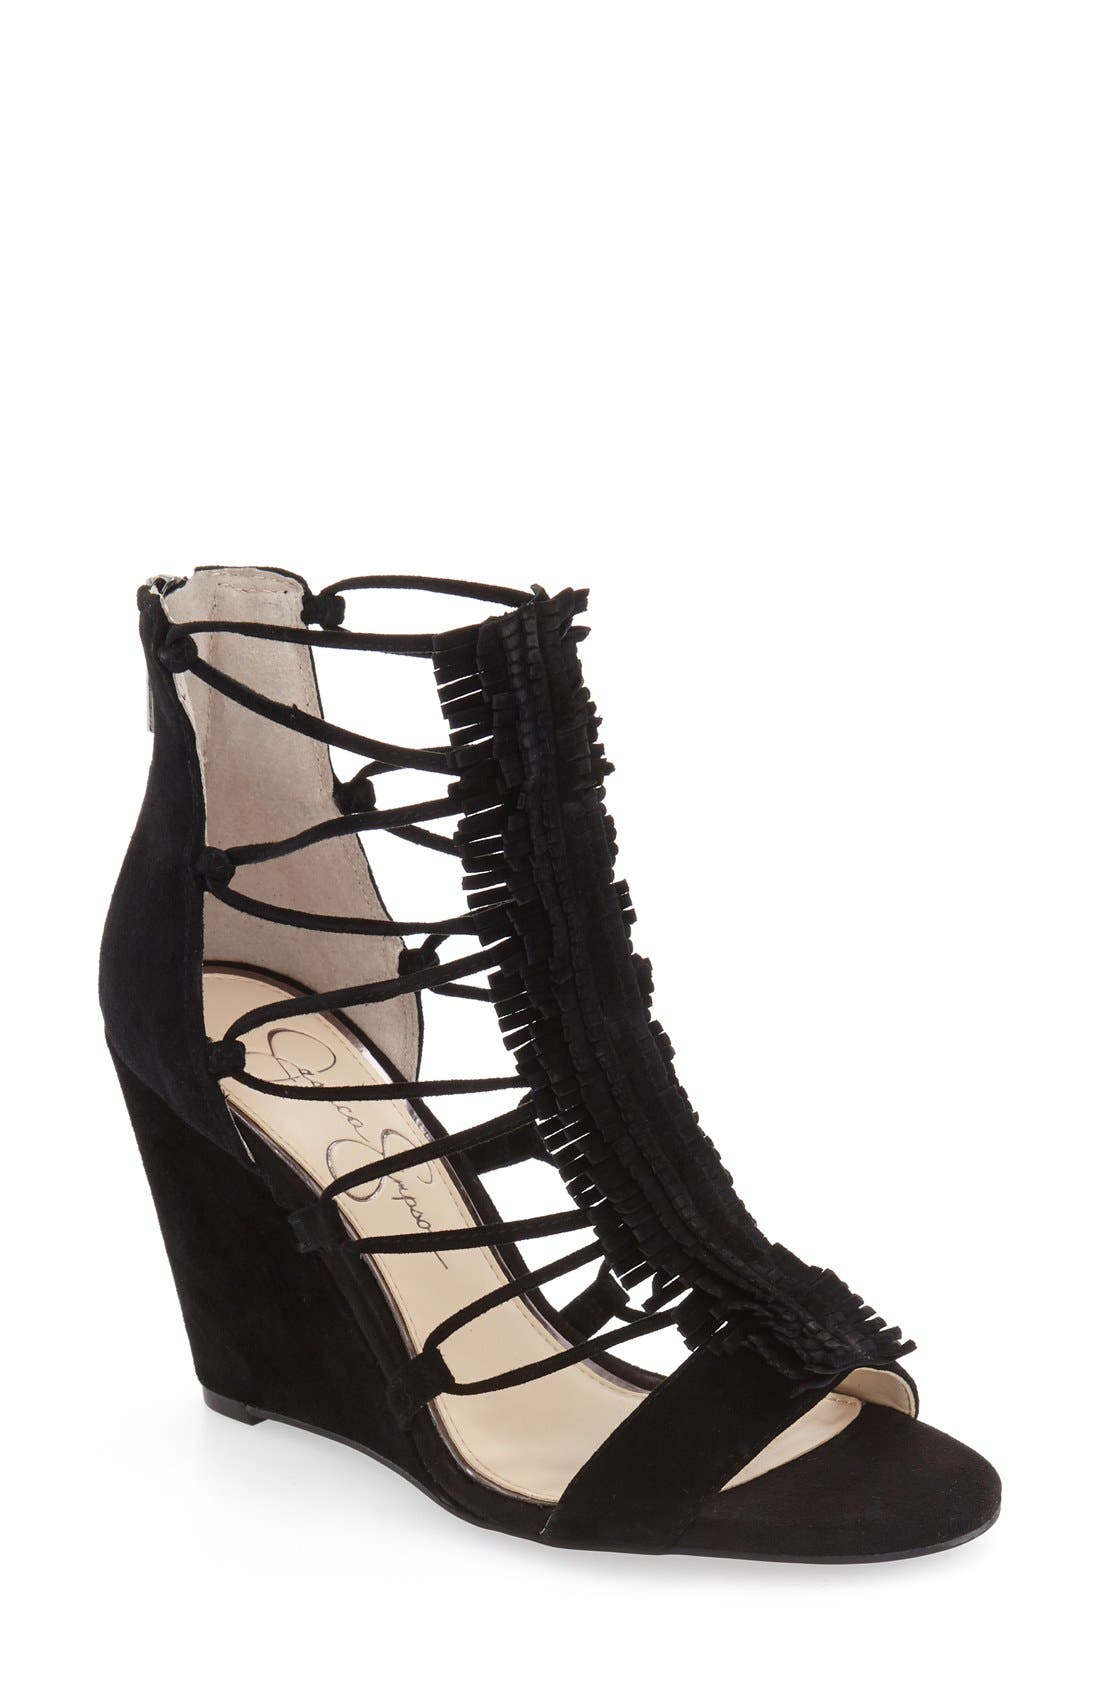 'Beccy' Wedge Sandal,                         Main,                         color, 001